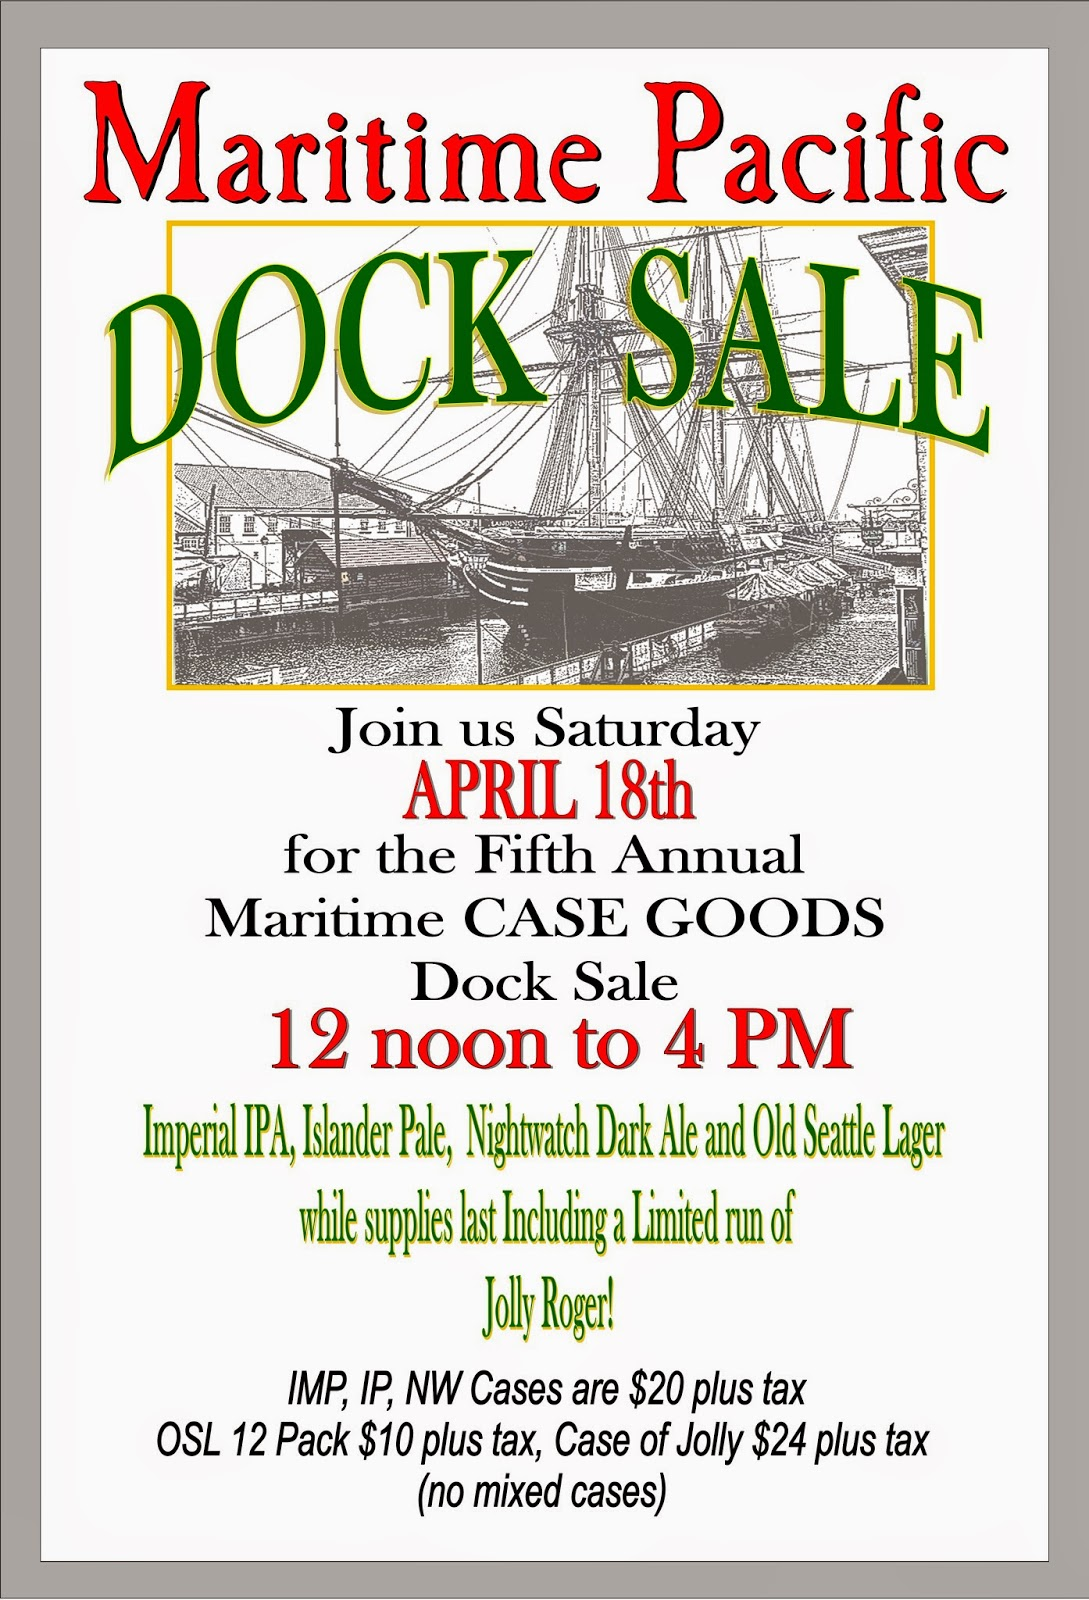 Spring case goods dock sale this saturday april 18th from noon to 4pm